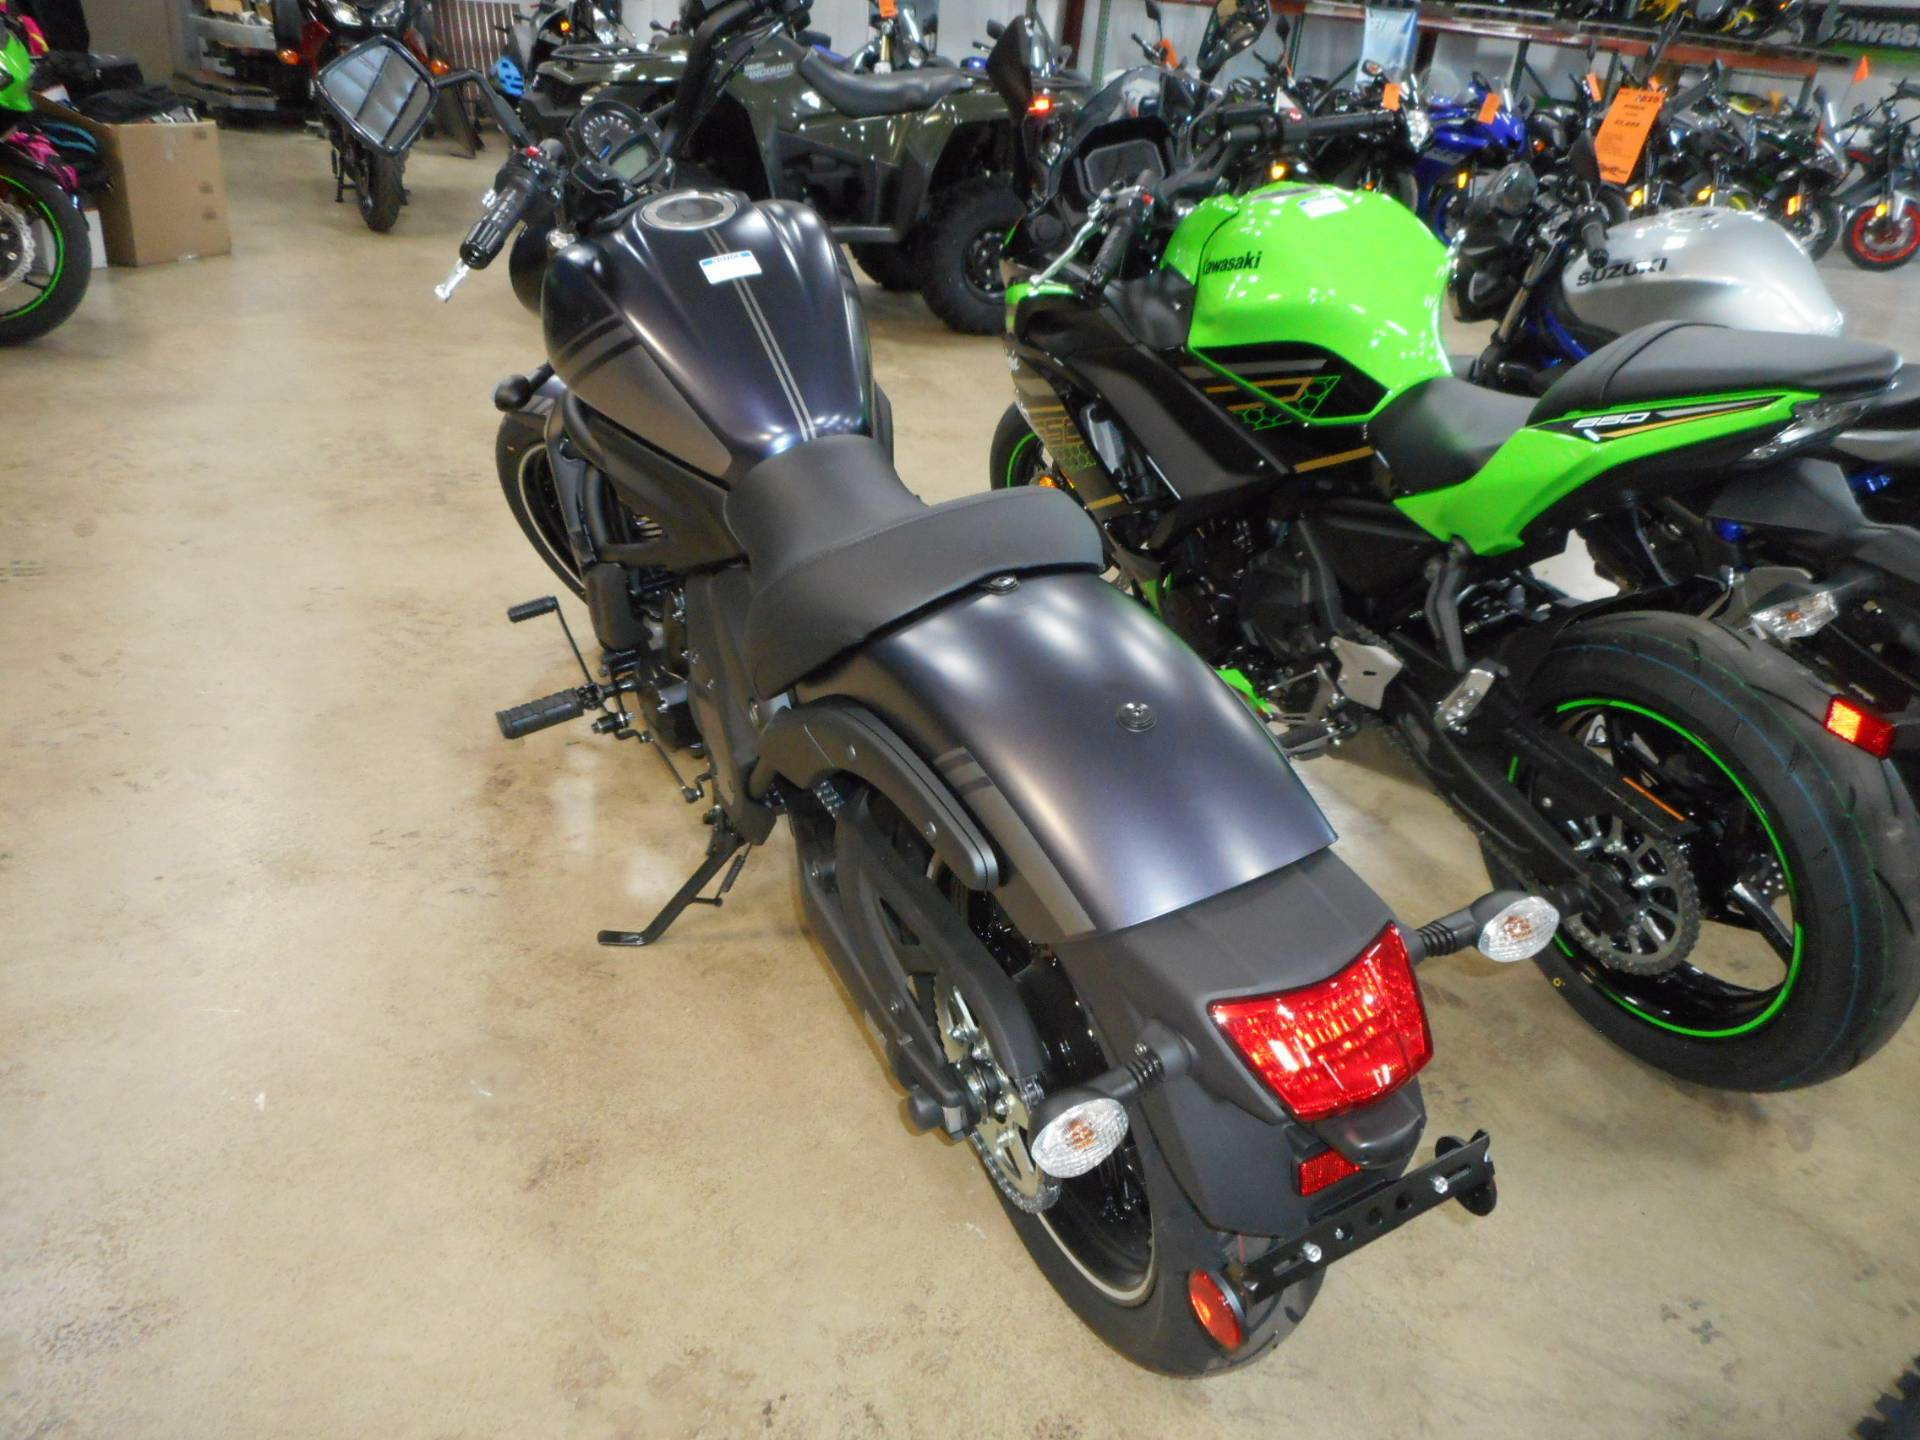 2020 Kawasaki Vulcan S ABS in Belvidere, Illinois - Photo 4